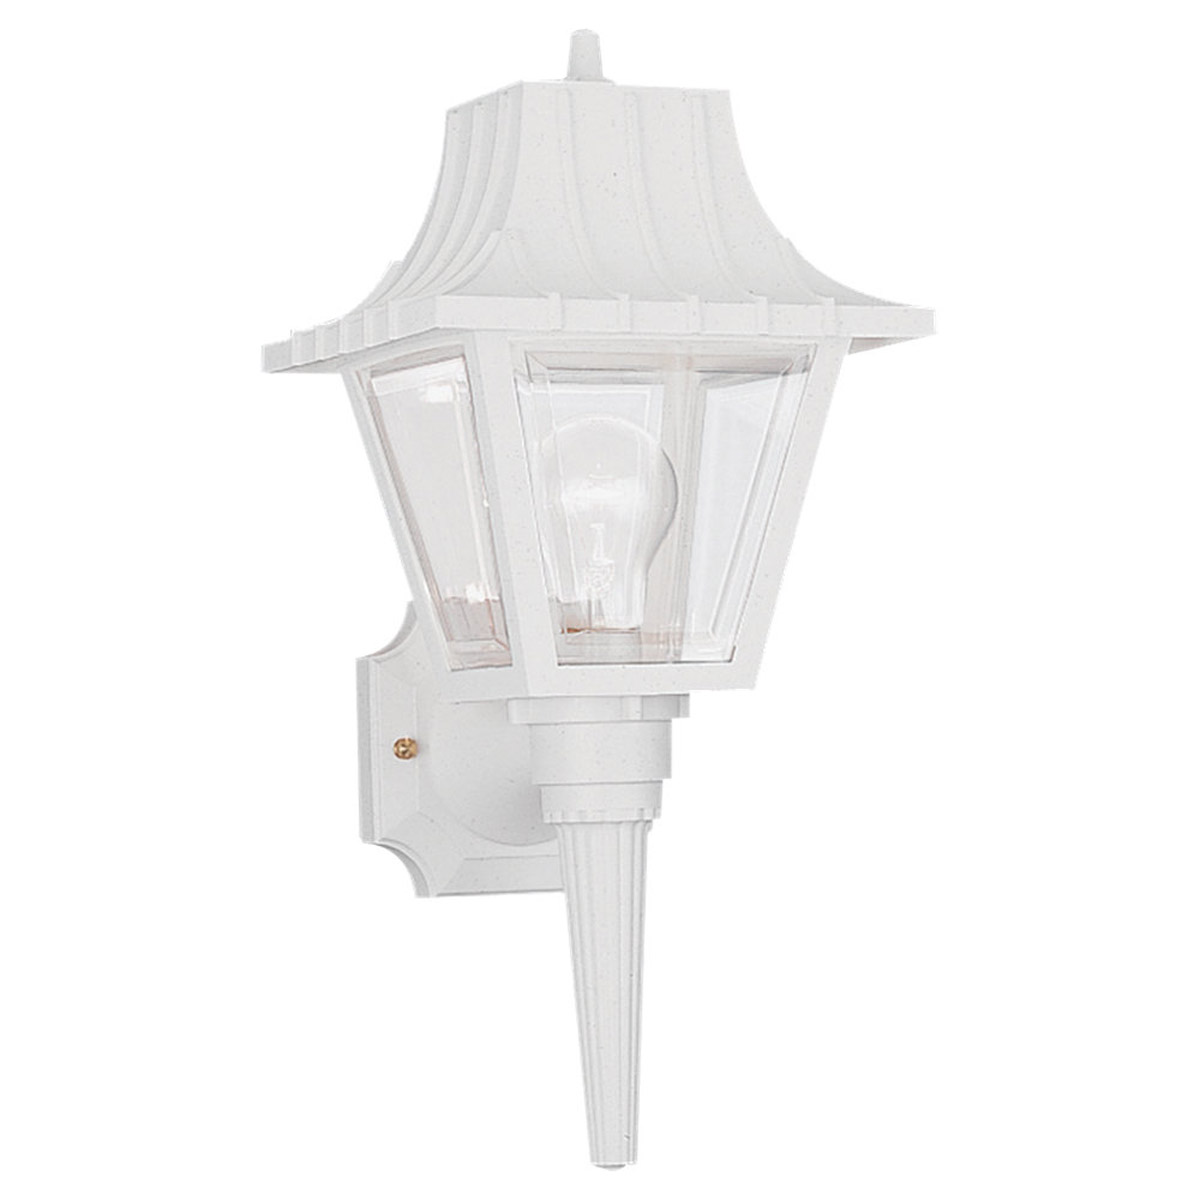 Sea Gull 8720-15 Painted Polycarbonate Lanterns 1 Light 18 inch White Outdoor Wall Lantern photo